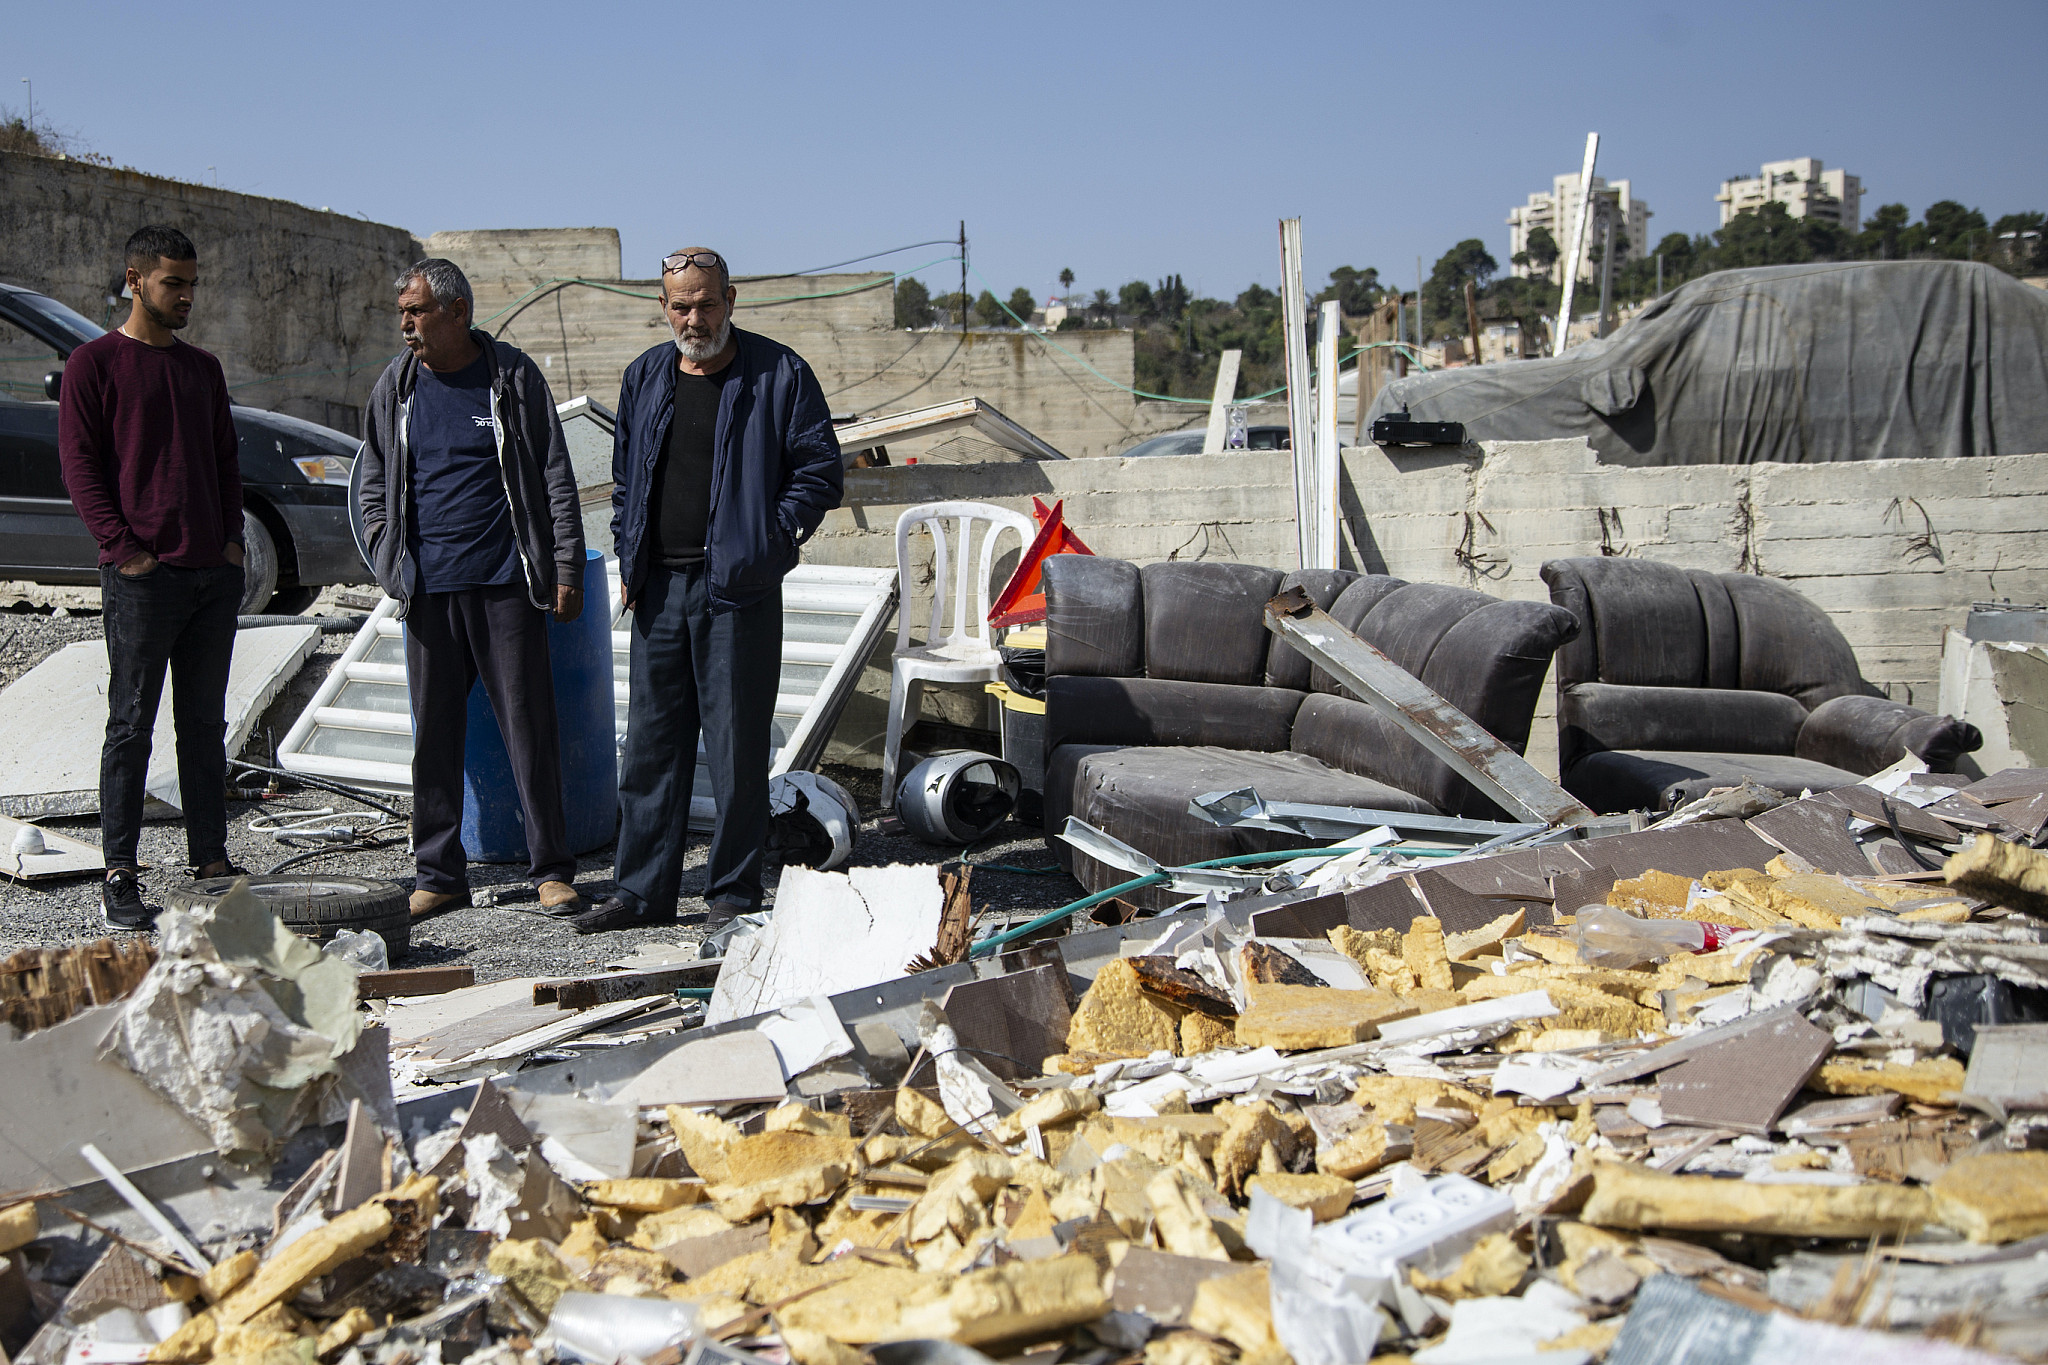 Ishaq Hamdan, center, stands by the remains of his home after it was demolished by Israeli authorities, Issawiya, East Jerusalem, November 7, 2019. (Faiz Abu Rmeleh/Activestills.org)